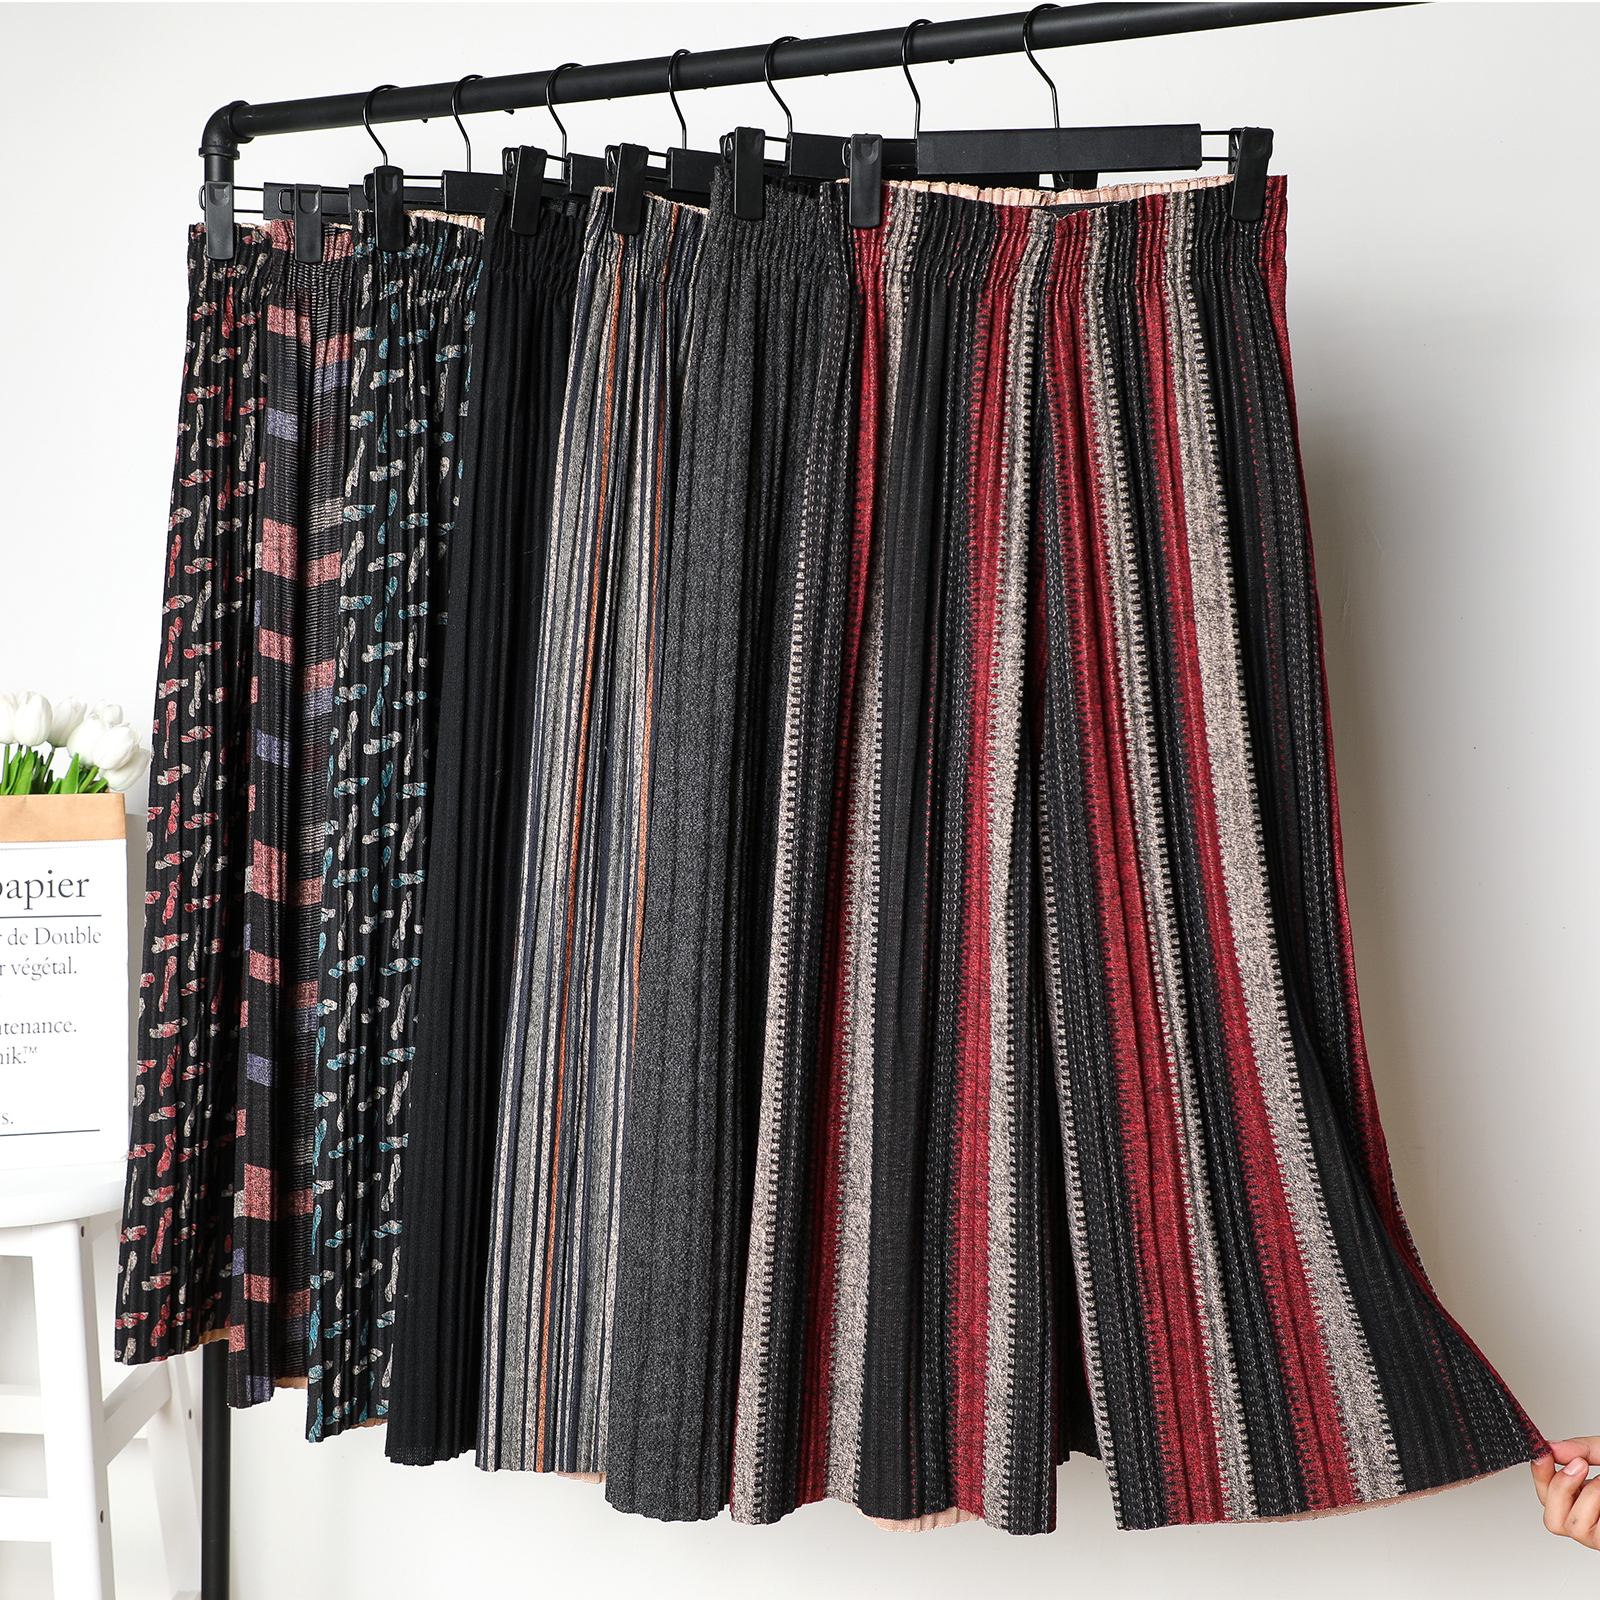 2019 New Autumn Winter Woolen   Wide     Leg     Pants   For Women Harem   pant   Elastic Waist Pleated Trousers Pleated   Pant   Thick Flared   Pants